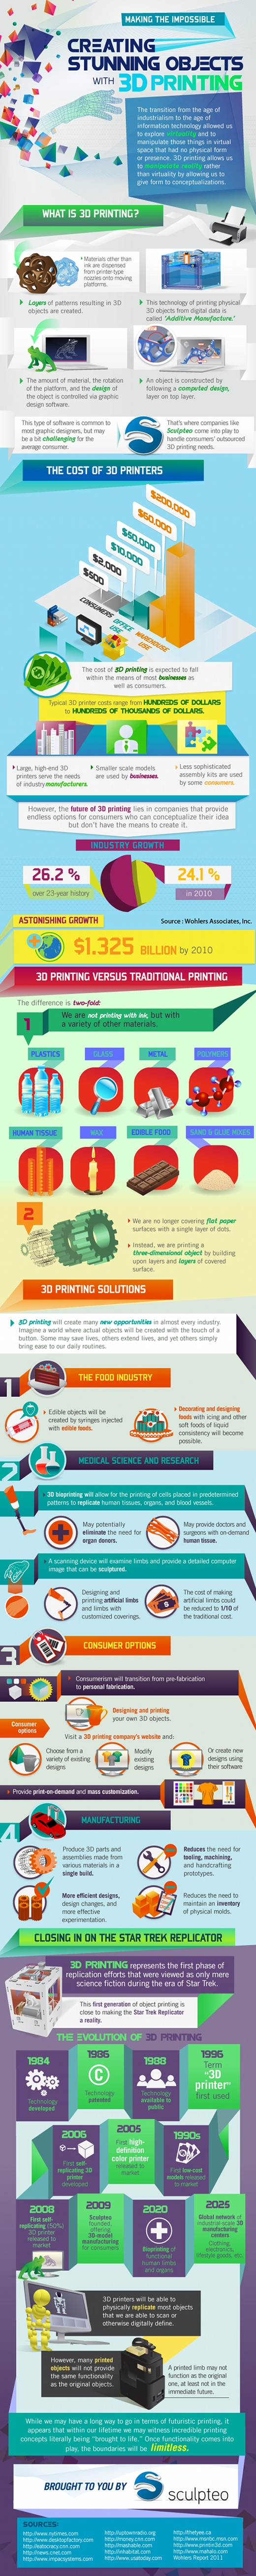 InfoGraphic 3DPrint explained v3 3D Printing Explained [Infographic]